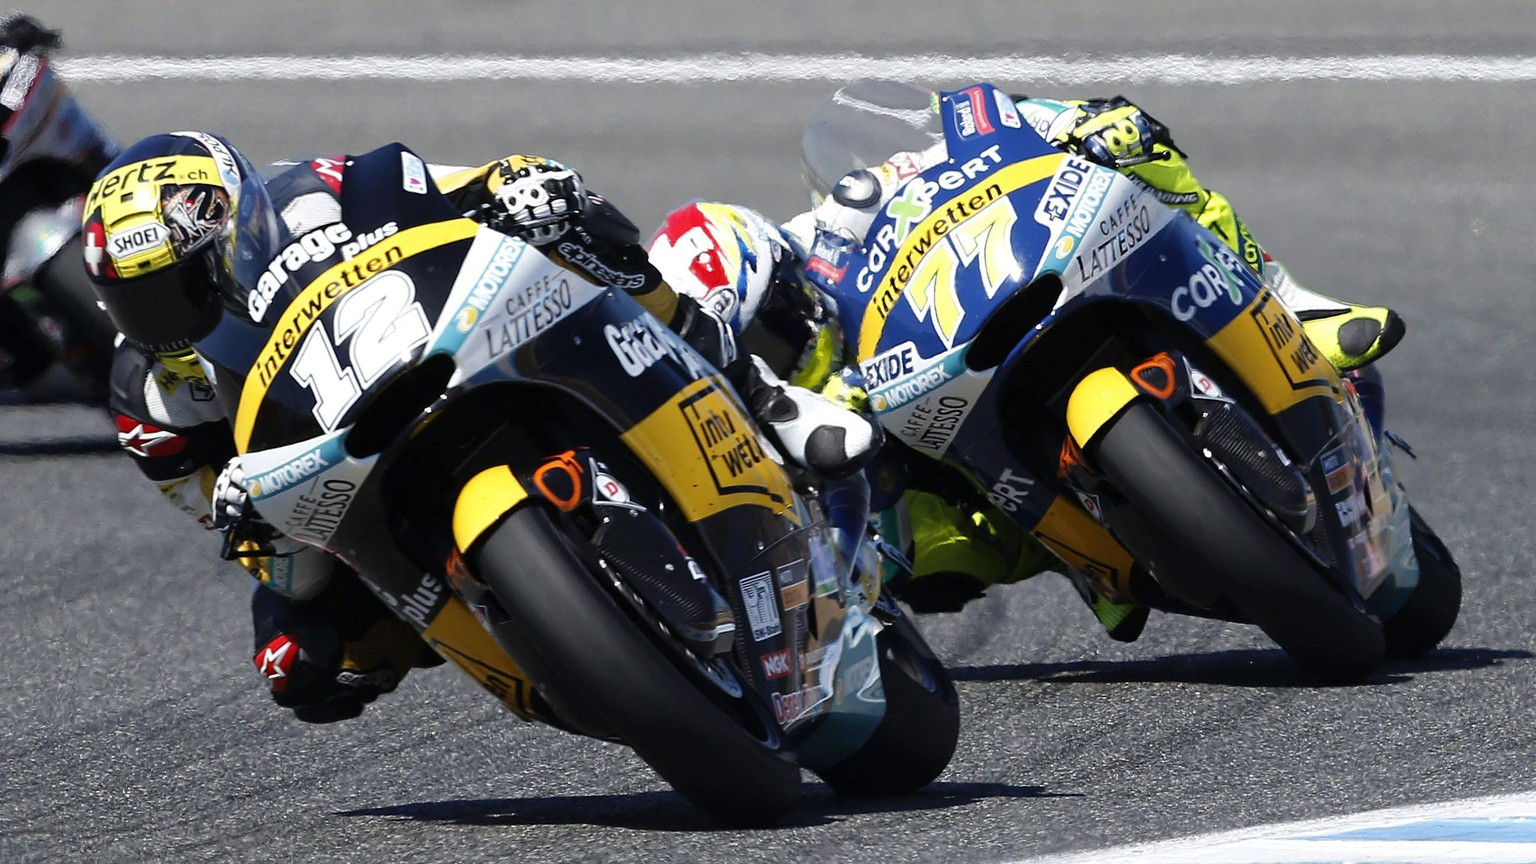 epa05275876 Swiss Moto2 rider Thomas Luethi (L), of Derendinger Interwetten, followed by countryman, Dominique Aegerter, of Technomag Interwetten, in action during the Spanish Motorcycling Grand Prix held in Jerez Circuit, southern Spain, on 24 April 2016.  EPA/ROMAN RIOS